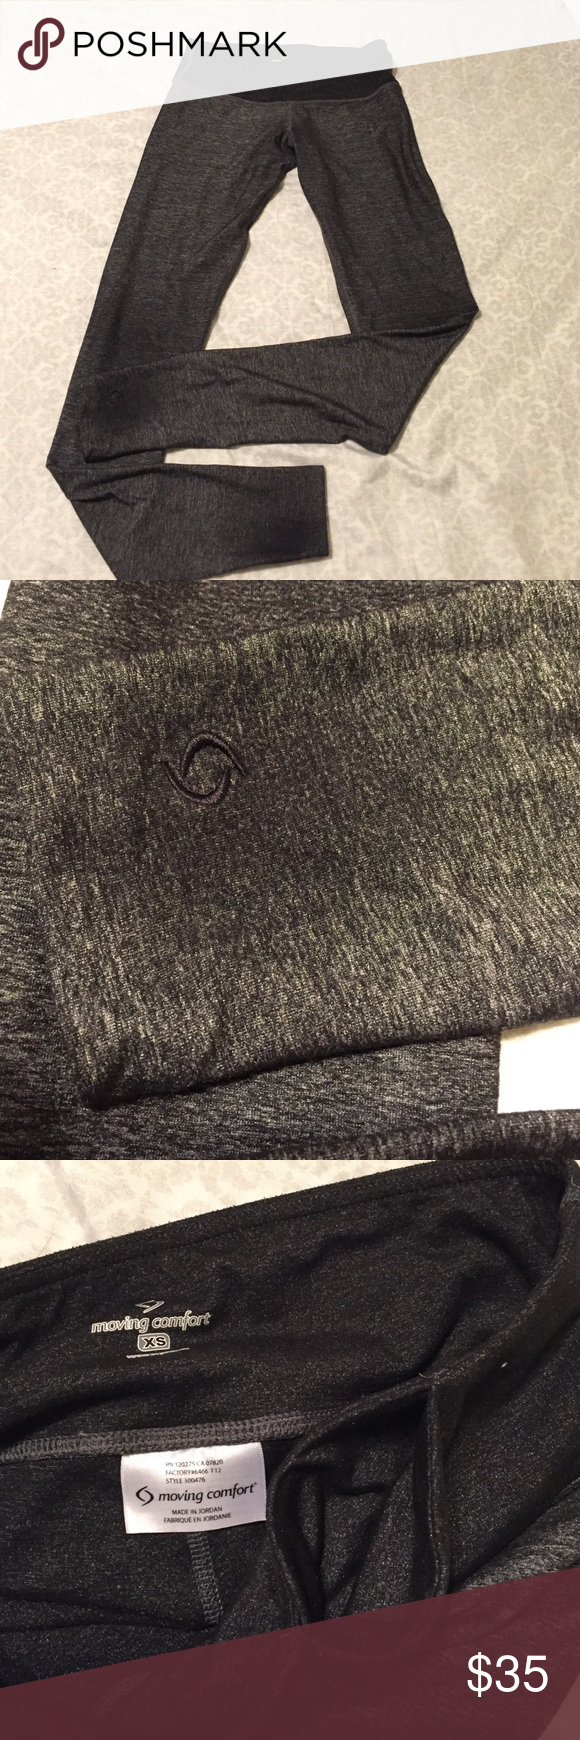 Full length leggings So soft and comfortable, same or even better quality than Lululemon. Perfect condition. I'll trade for same items in small. lululemon athletica Pants Leggings